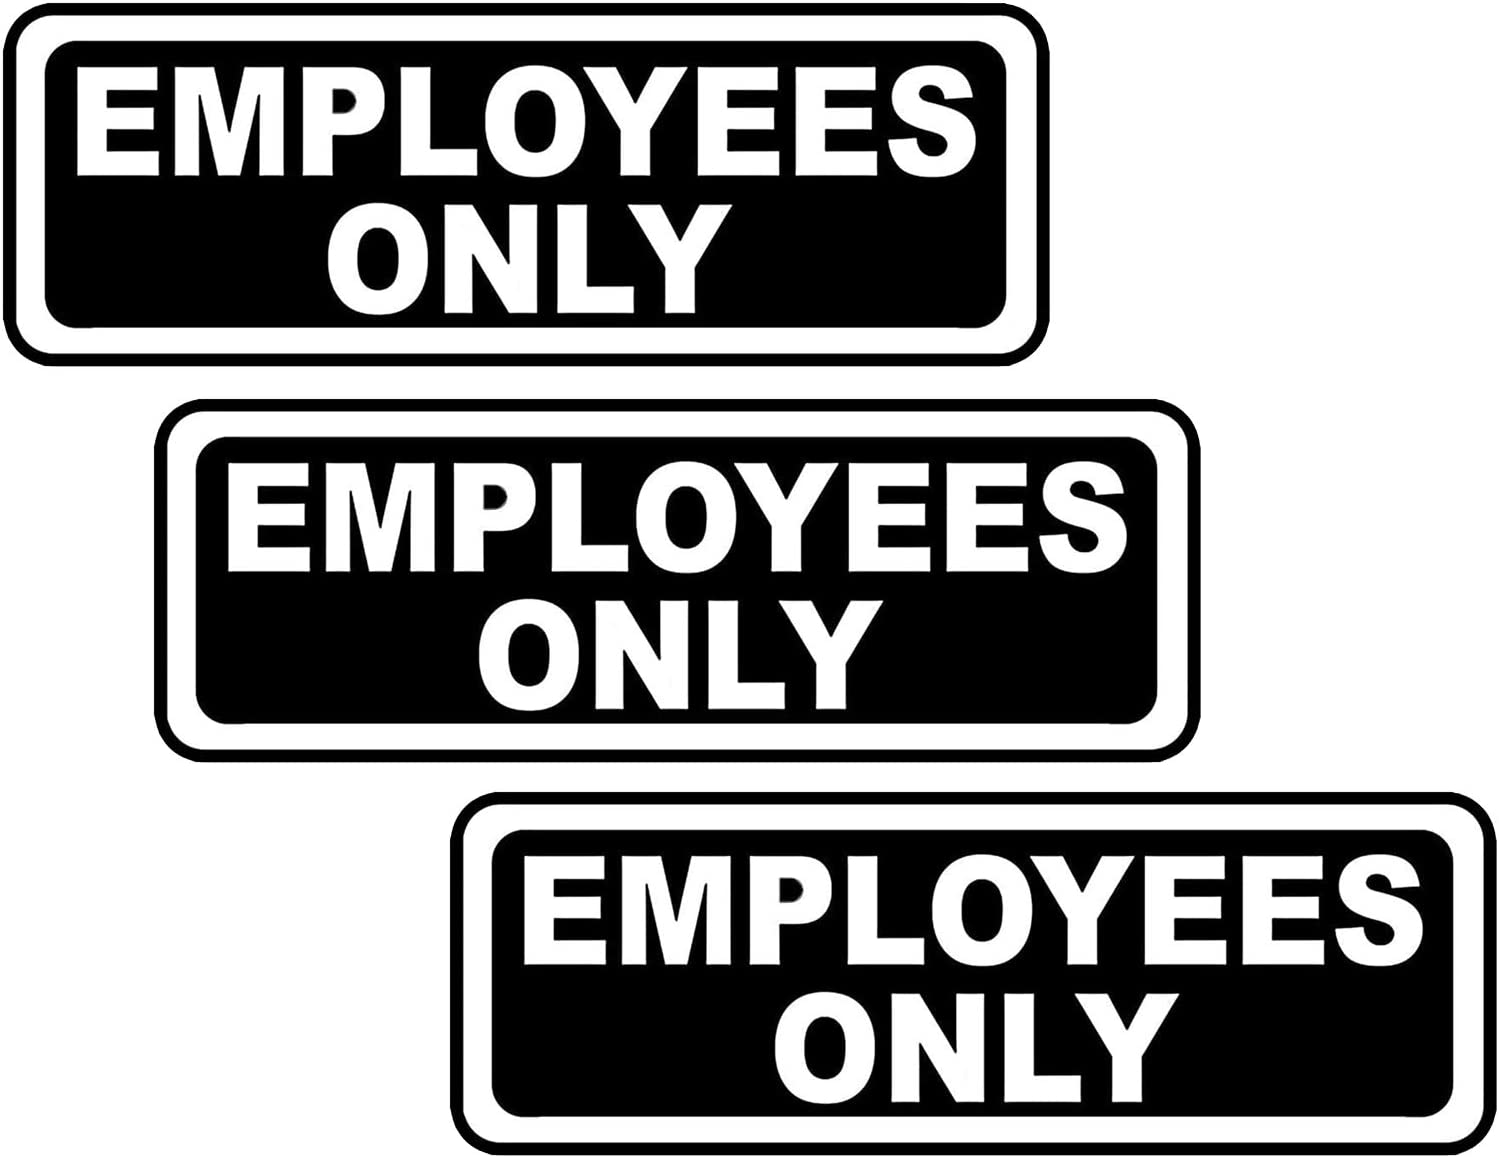 Employees Only Sign, Office Door Business Store Wall Canteen Restroom Information Sign,Acrylic Signs with Strong Adhesive Without Any Tools(3Pack,7.7 X 2.5 inch)